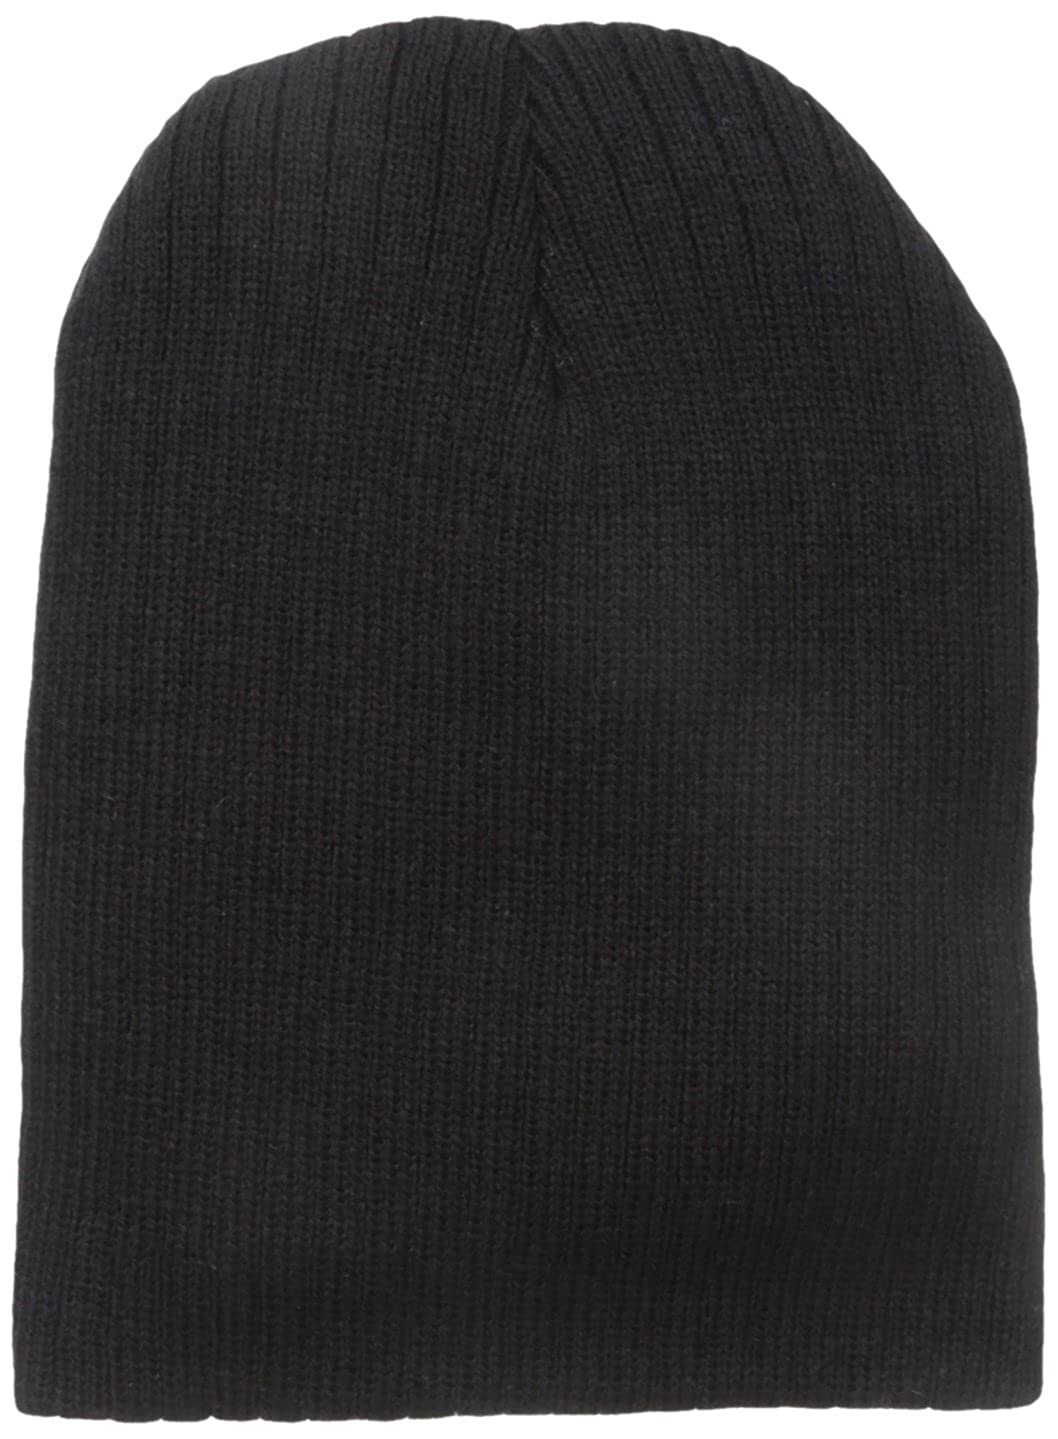 2413110c7b8 Amazon.com  Wigwam Men s Thinsulate Beanie